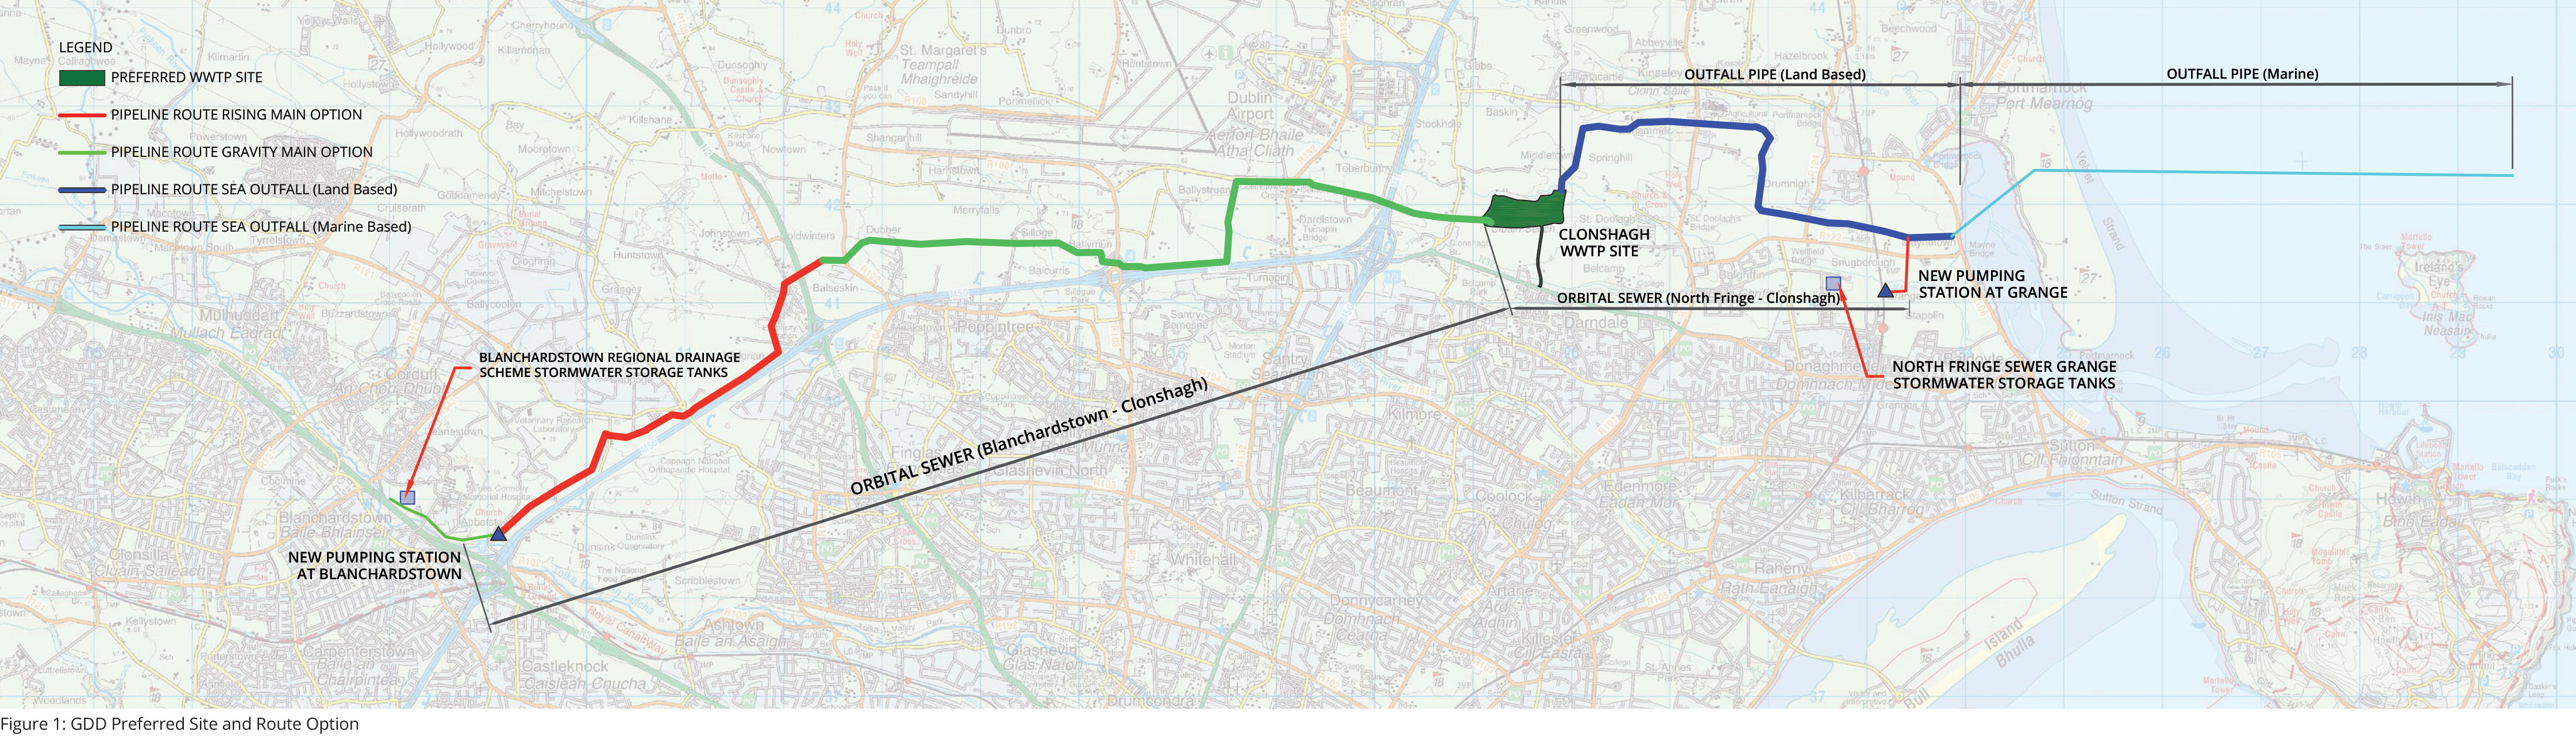 Greater Dublin Drainage Preferred Site and Route Option